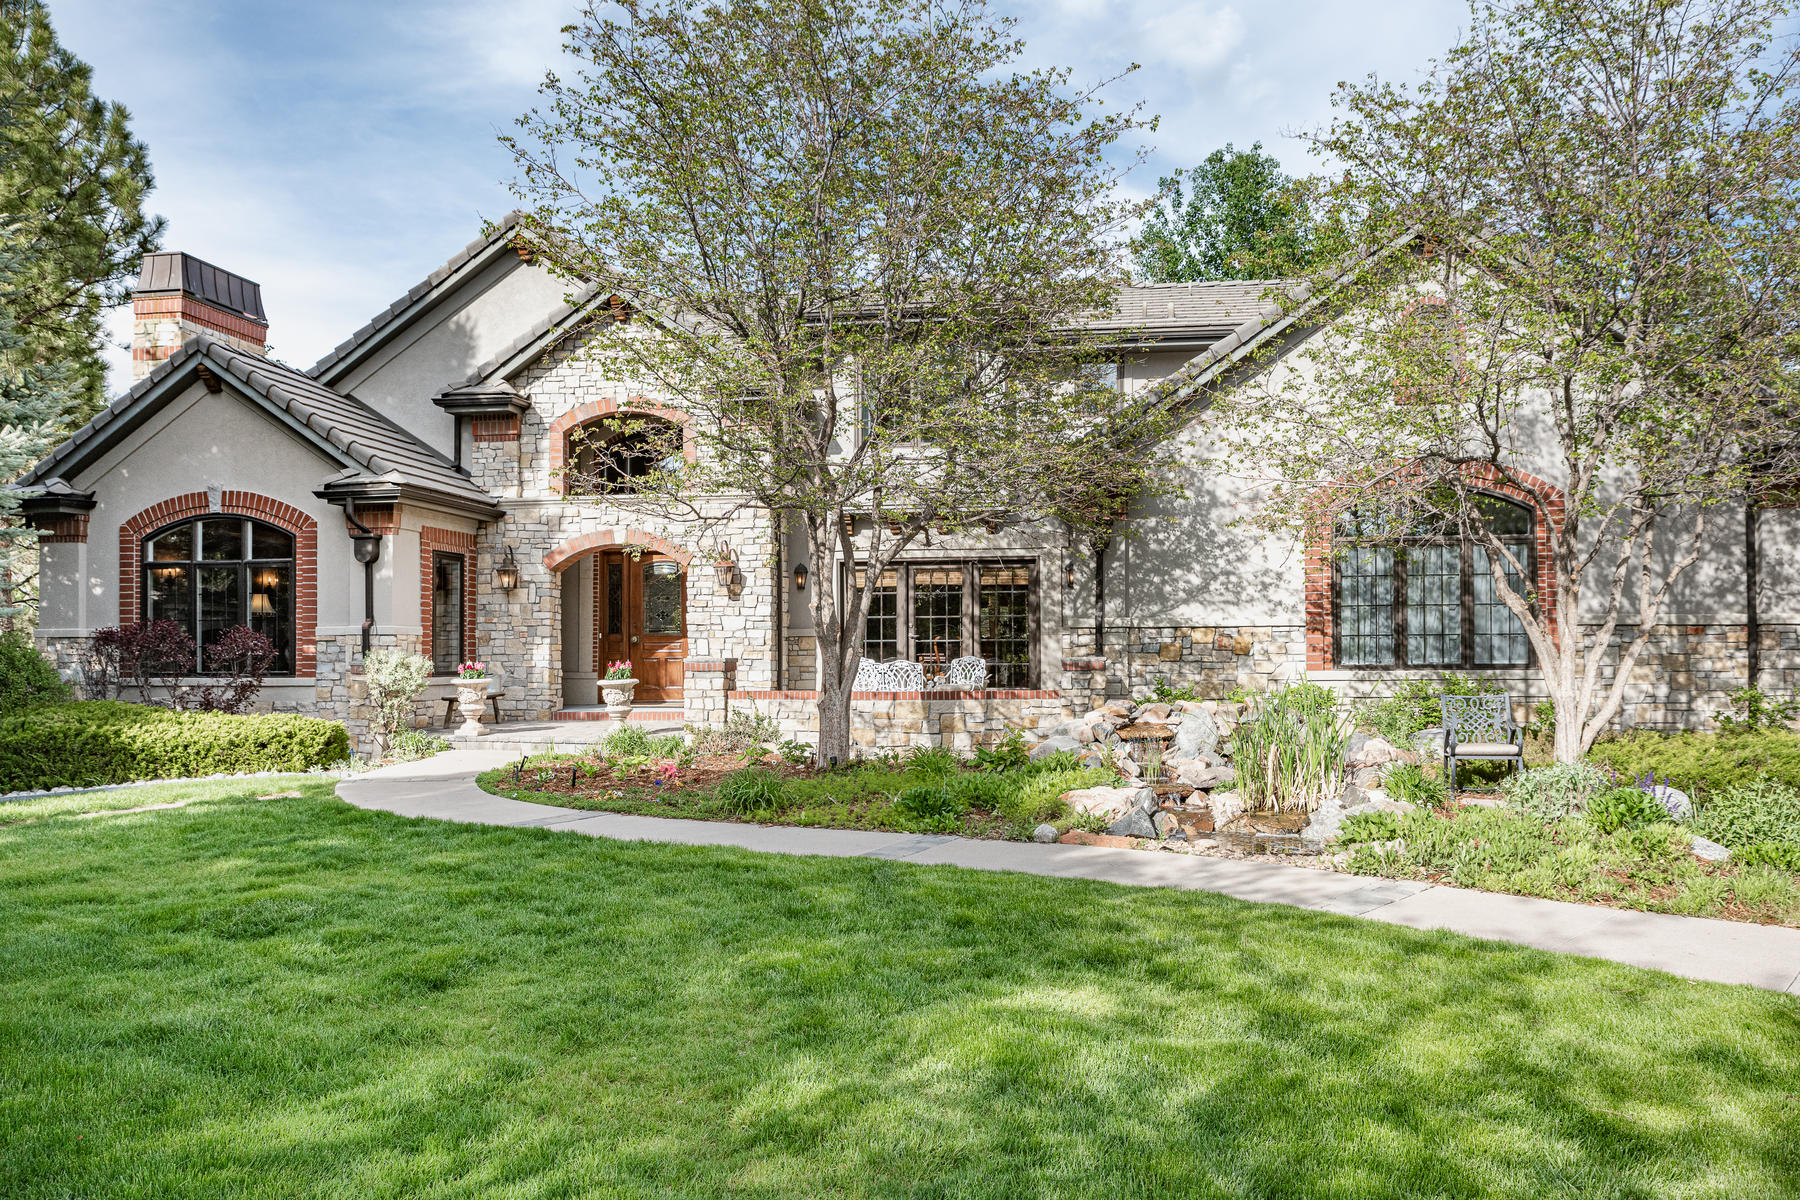 Single Family Homes for Sale at Nestled on a private .68 acre, cul-de-sac site that is truly park-like. 5740 Honeylocust Circle Greenwood Village, Colorado 80121 United States